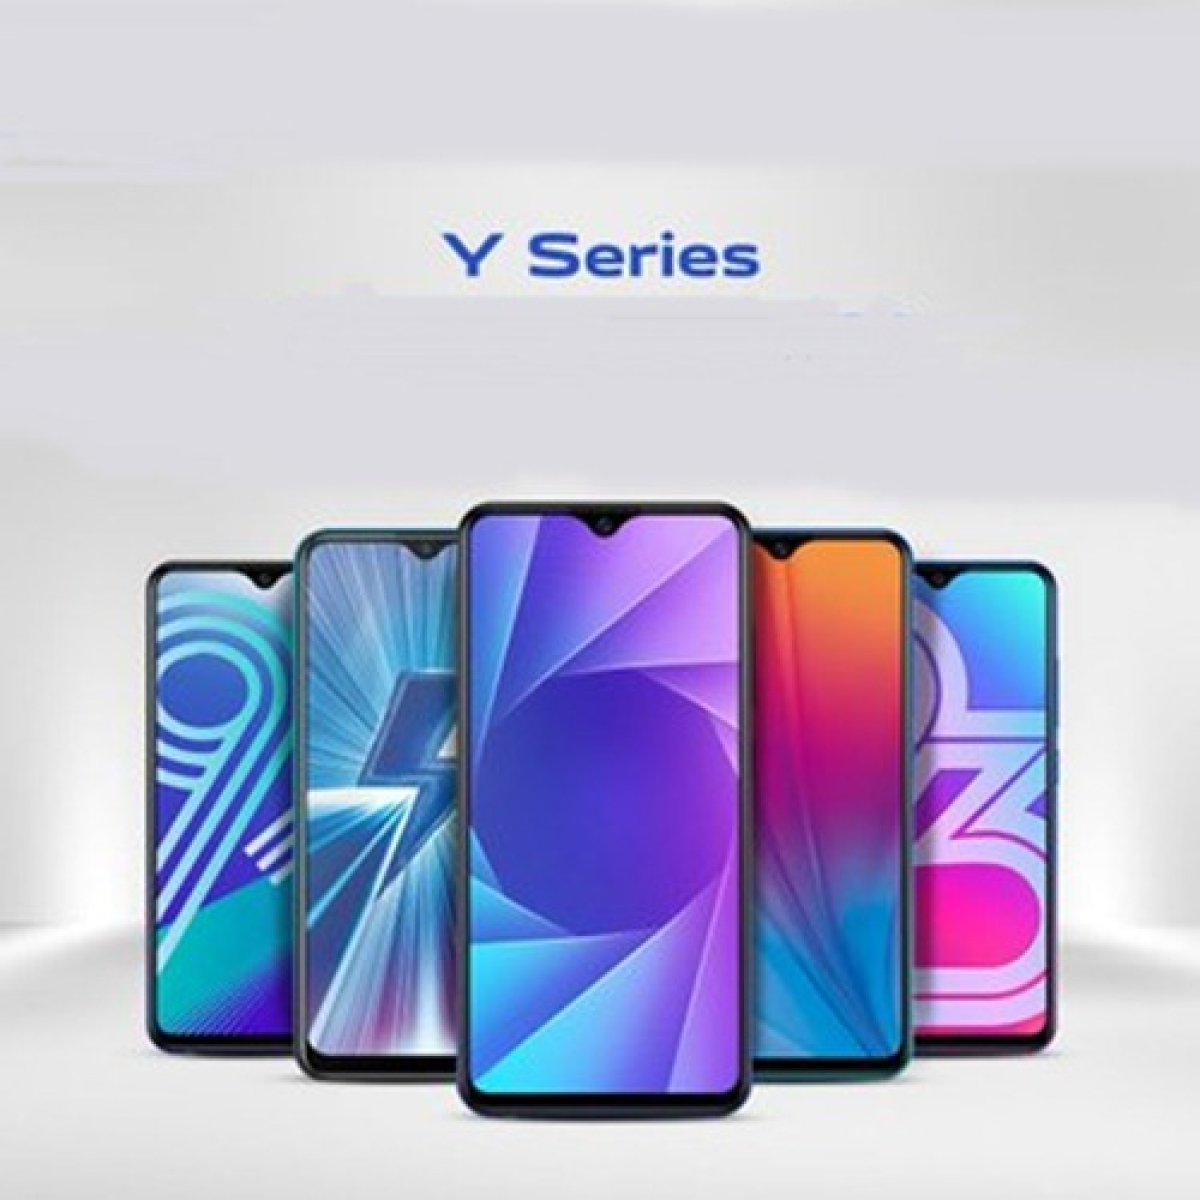 Vivo refreshes its budget Y series in India